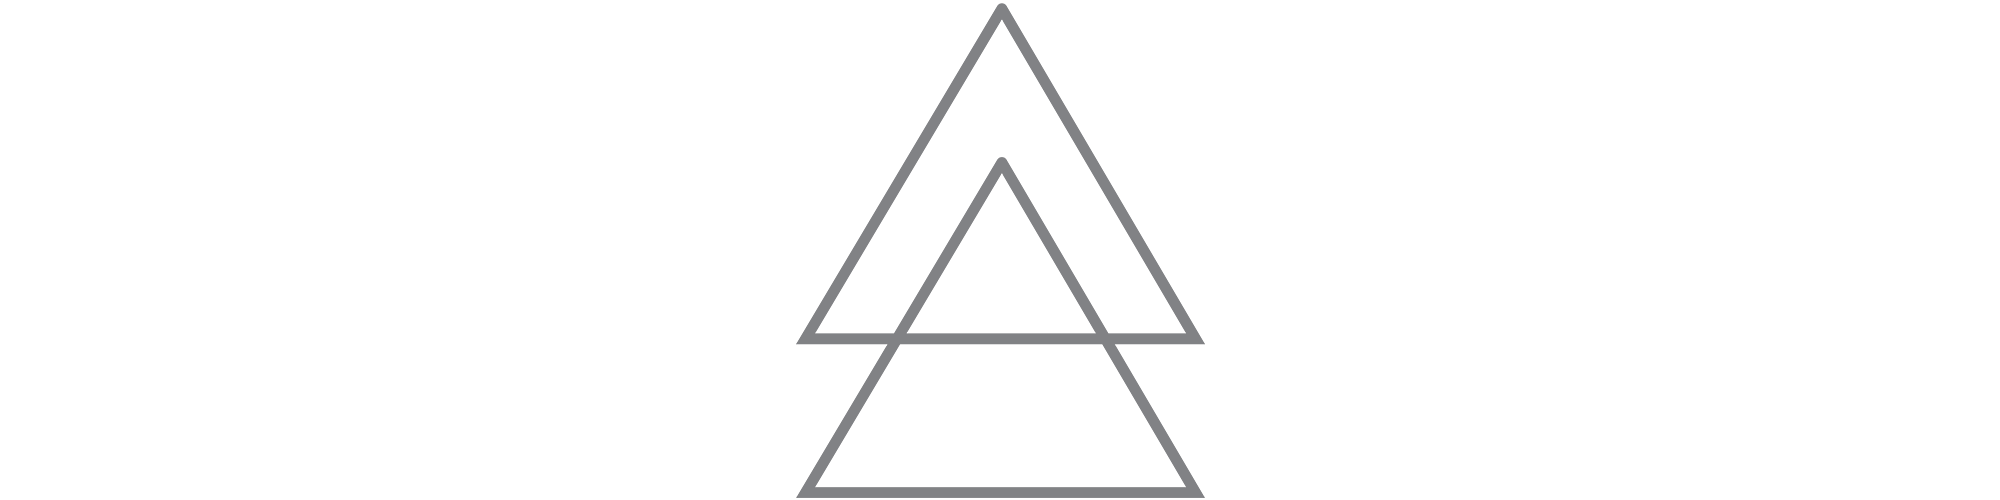 Triangle_Icon_Grey.png